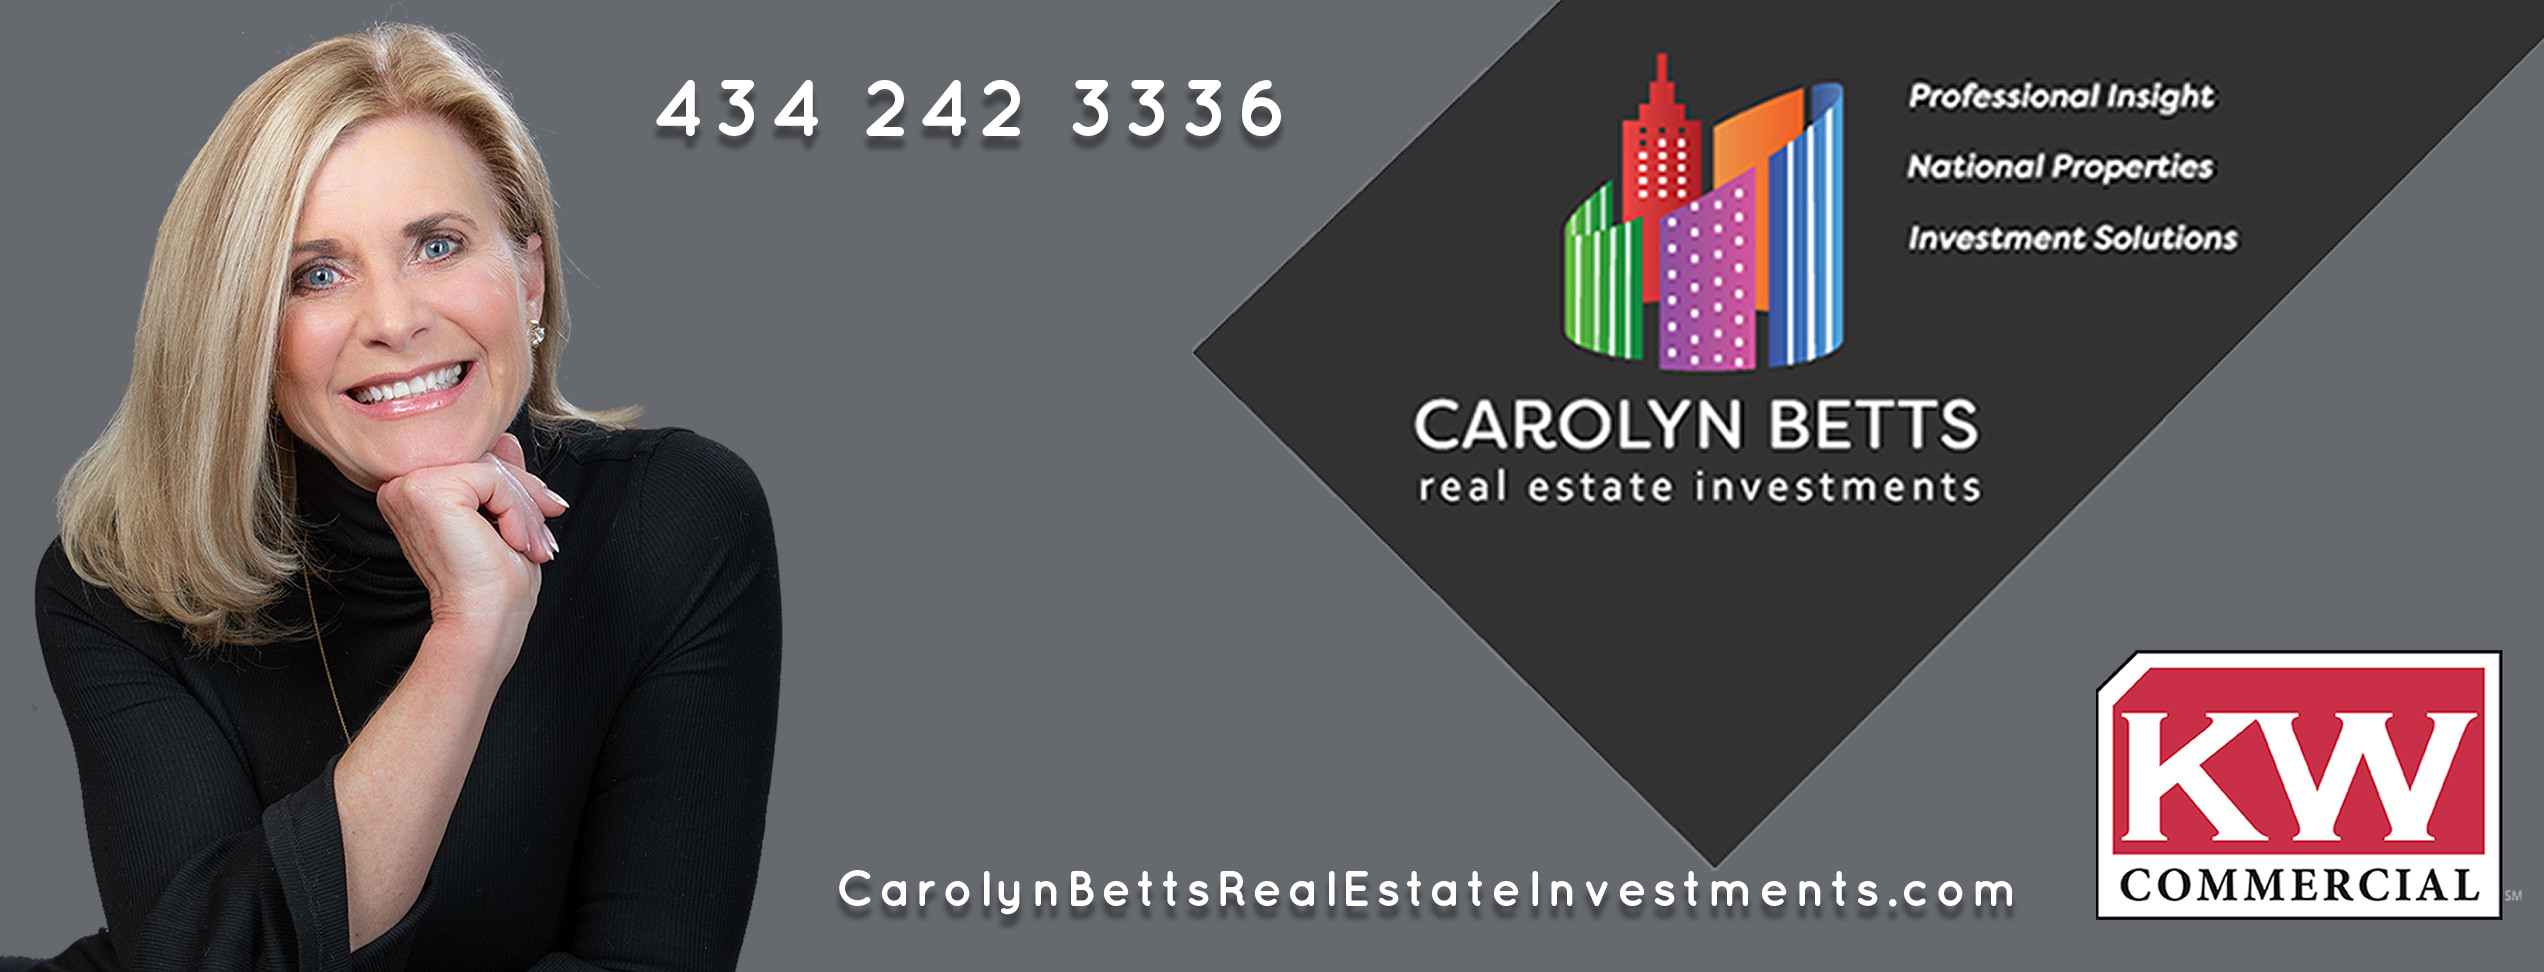 Carolyn-Betts-Commercial-Real-Estate-Investments